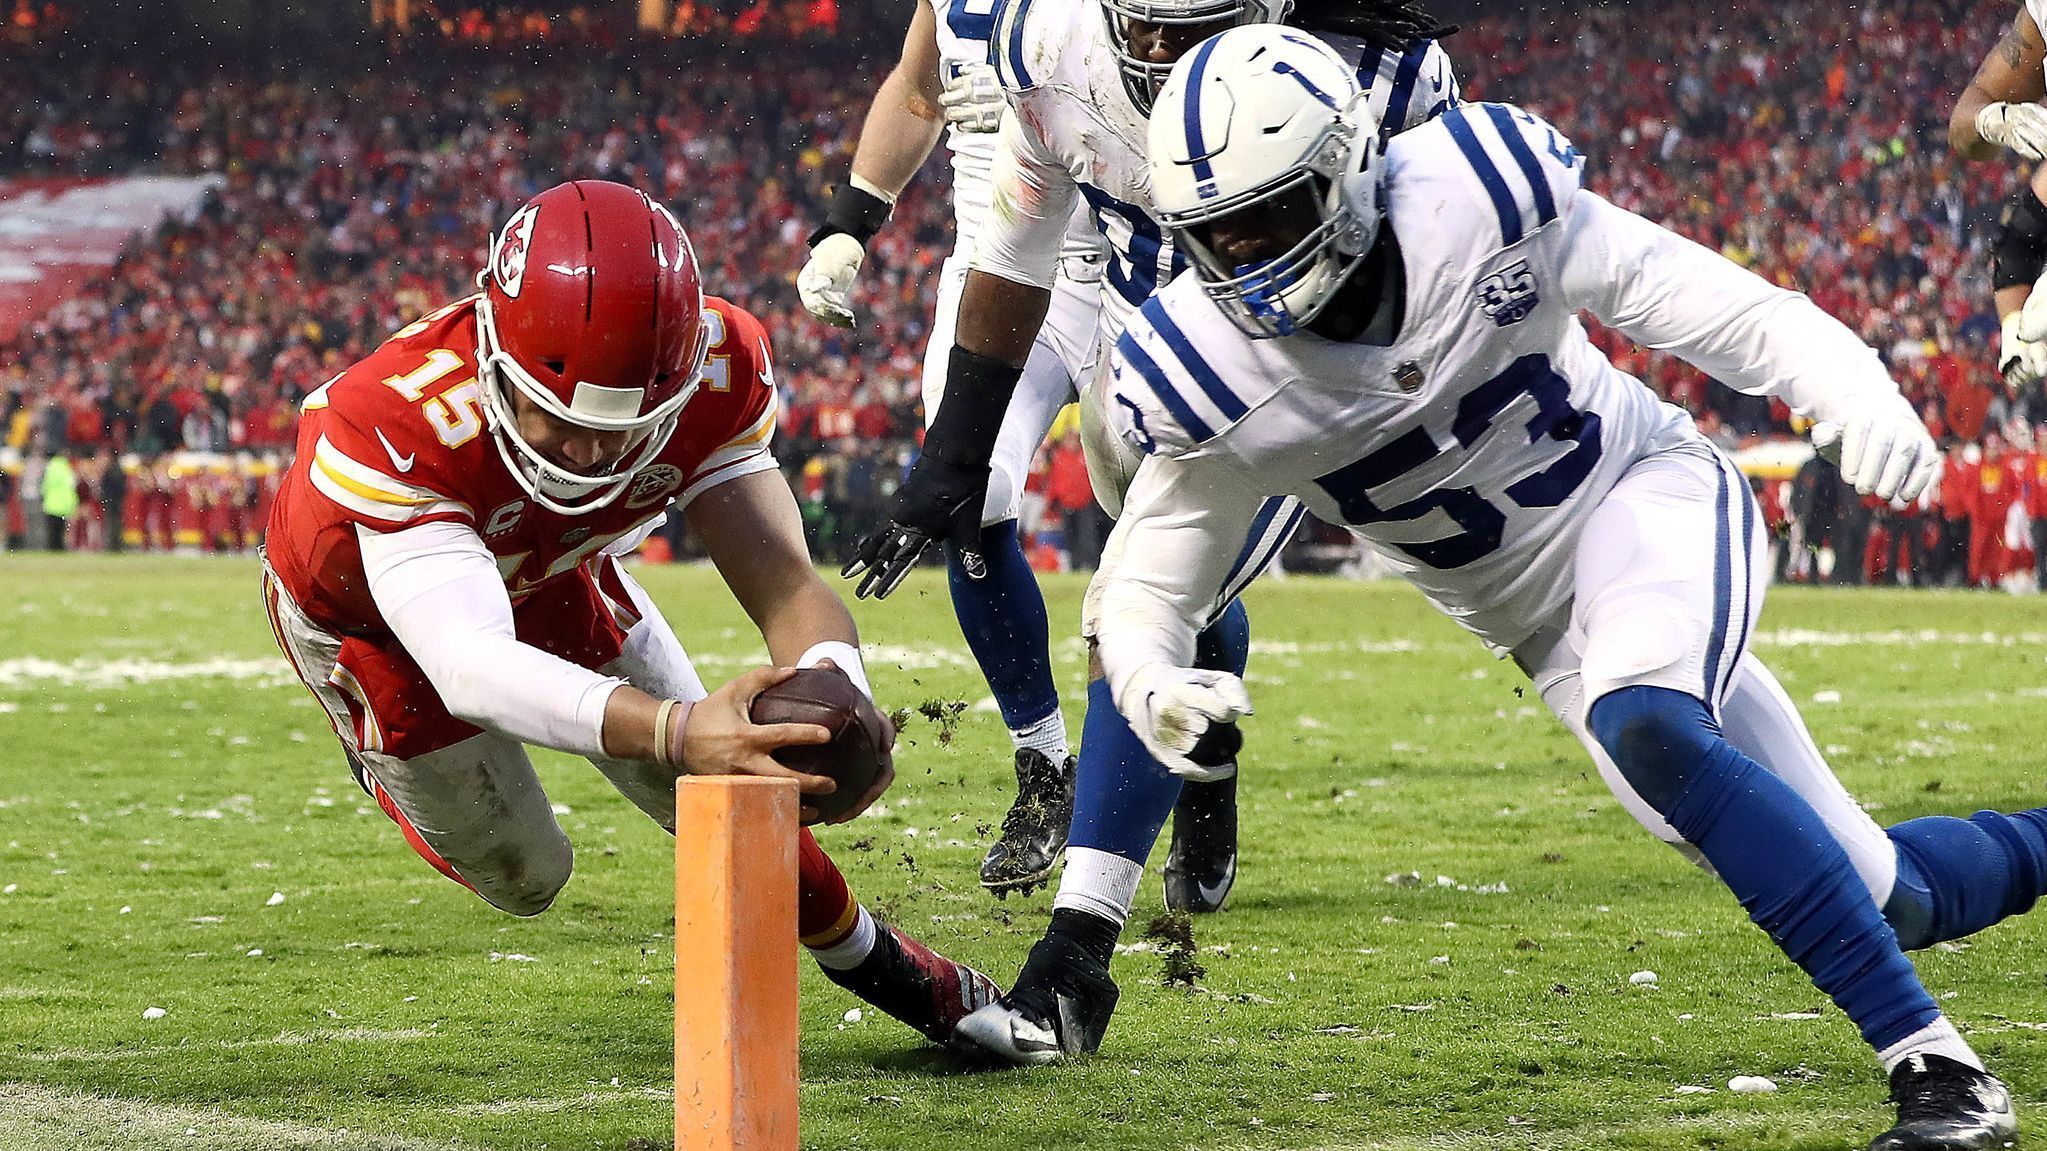 Patrick Mahomes, Damien Williams and defense lead Chiefs to 31-13 victory over Colts